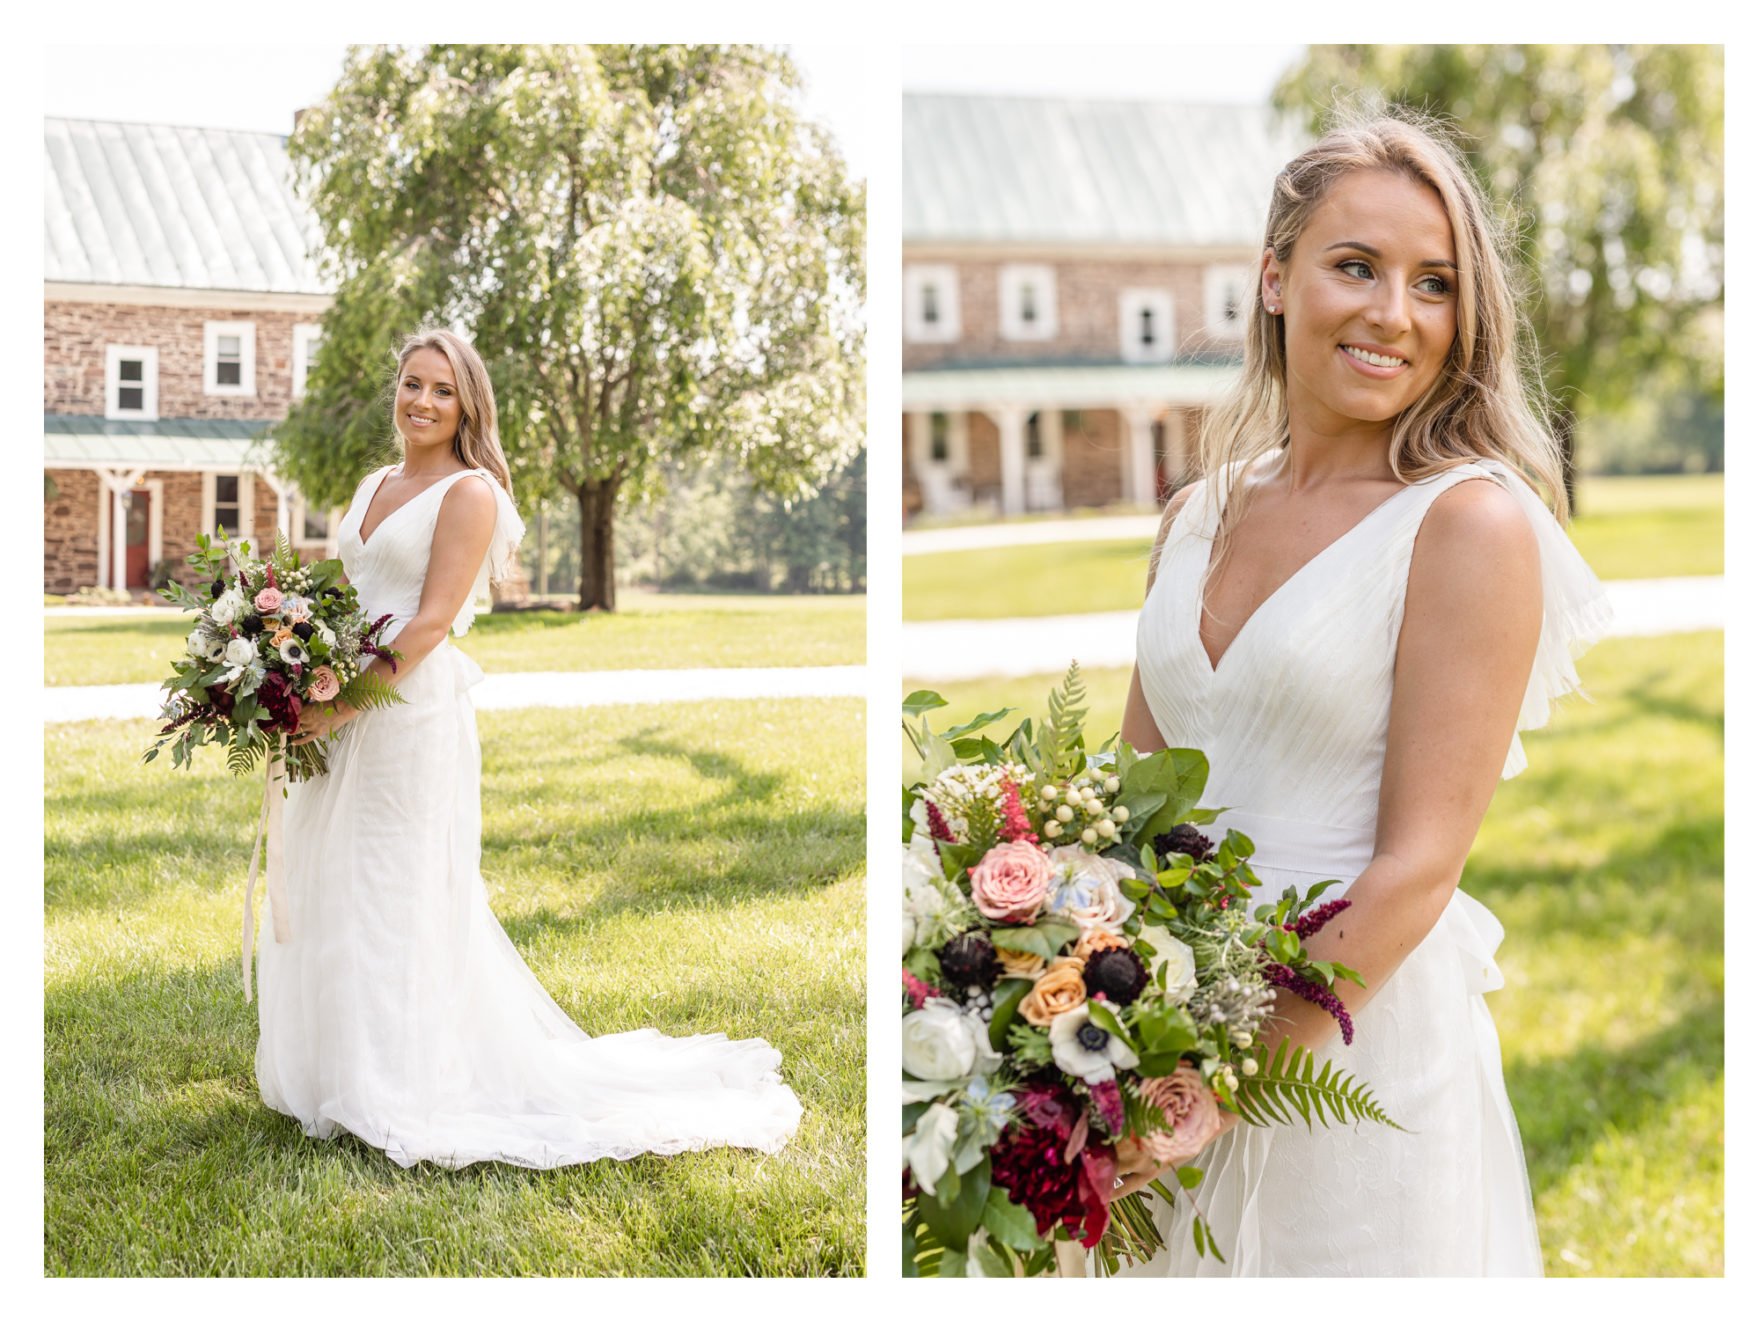 Summer wedding at a private residence farm in Westminster Carroll County Maryland. Cicadas, cows and dogs at the wedding. Pond view bride portraits